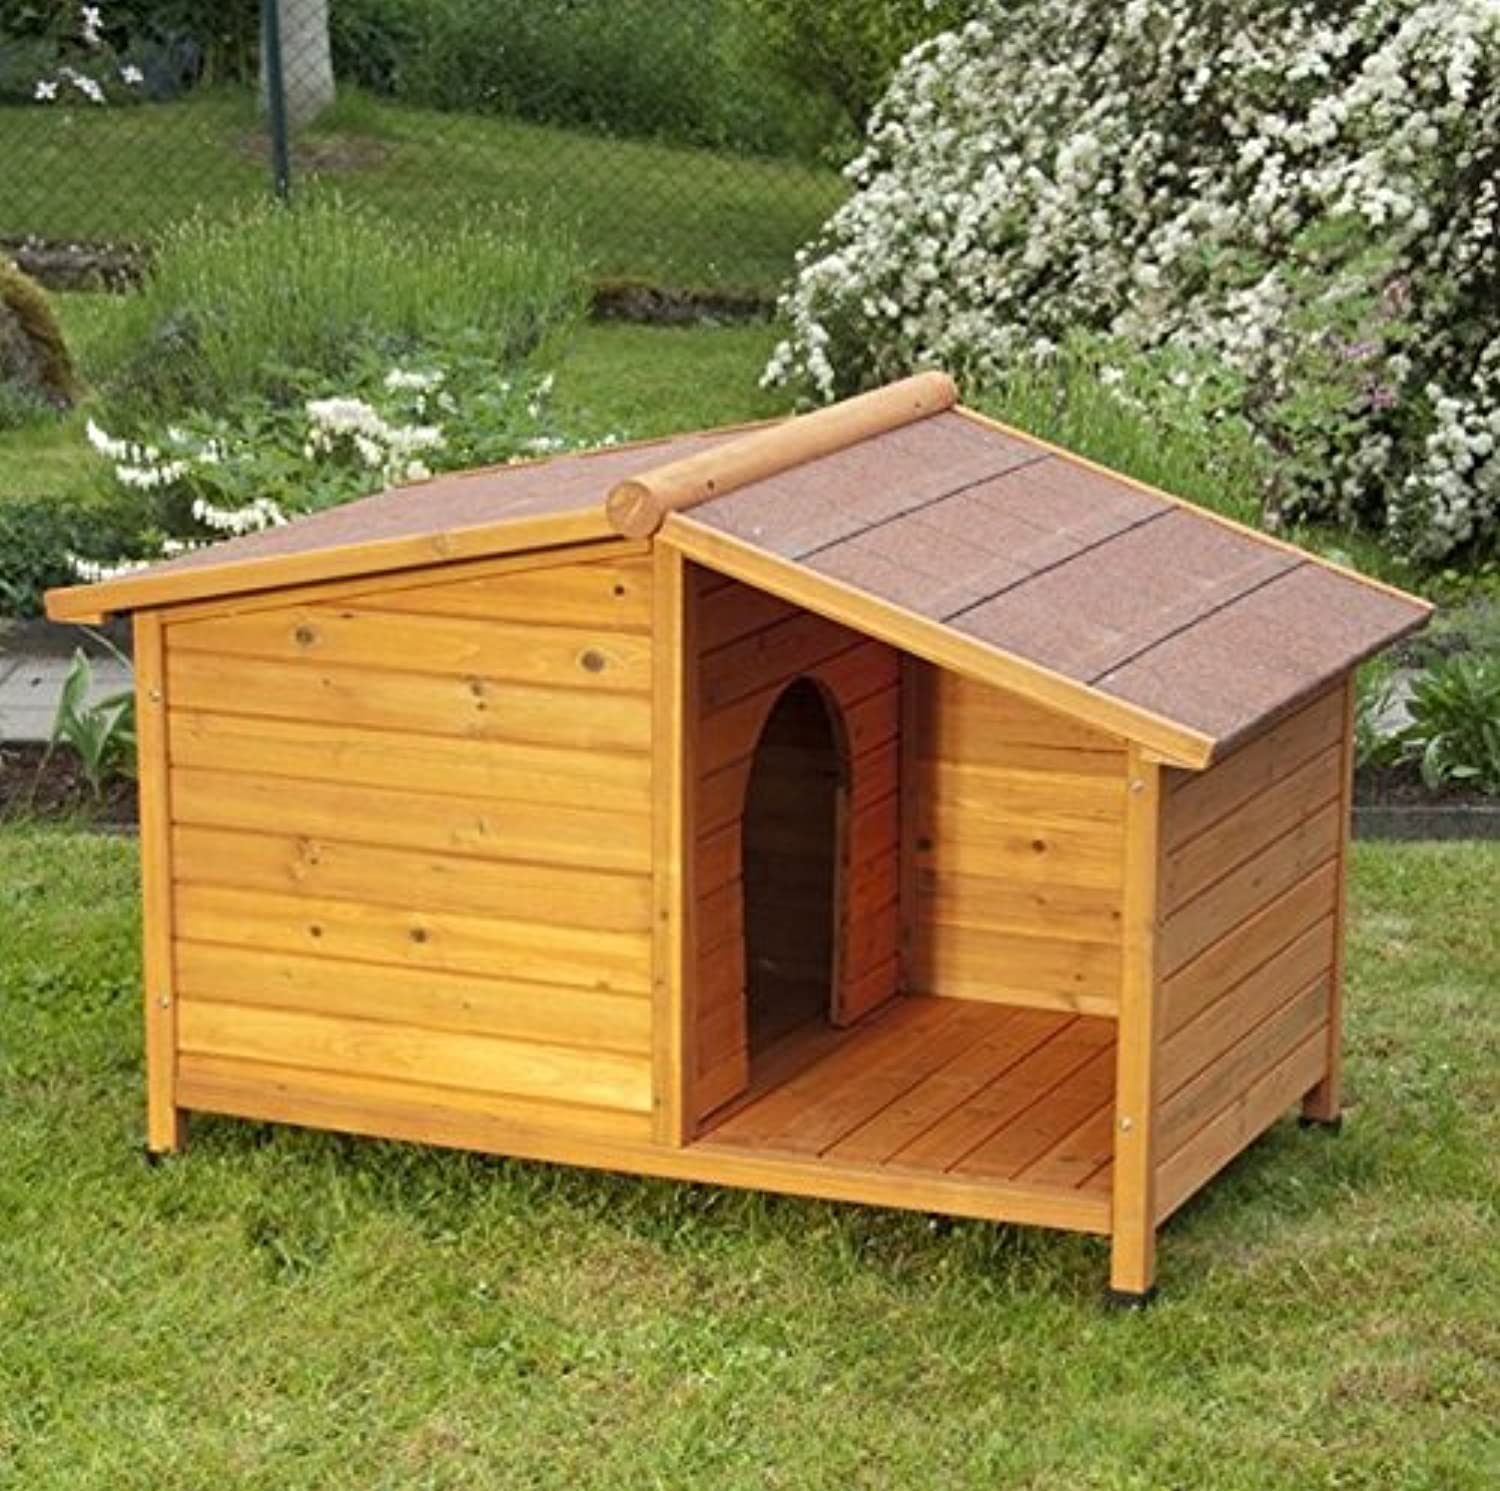 Oiled Fir Wood 4 Season Dog Kennel  with Sheltered Patio  Ideal Kennel to Keep your Four Legged Friend Predected From All the Elements (L  132 cm x 85 cm x 86 cm L x W x H)